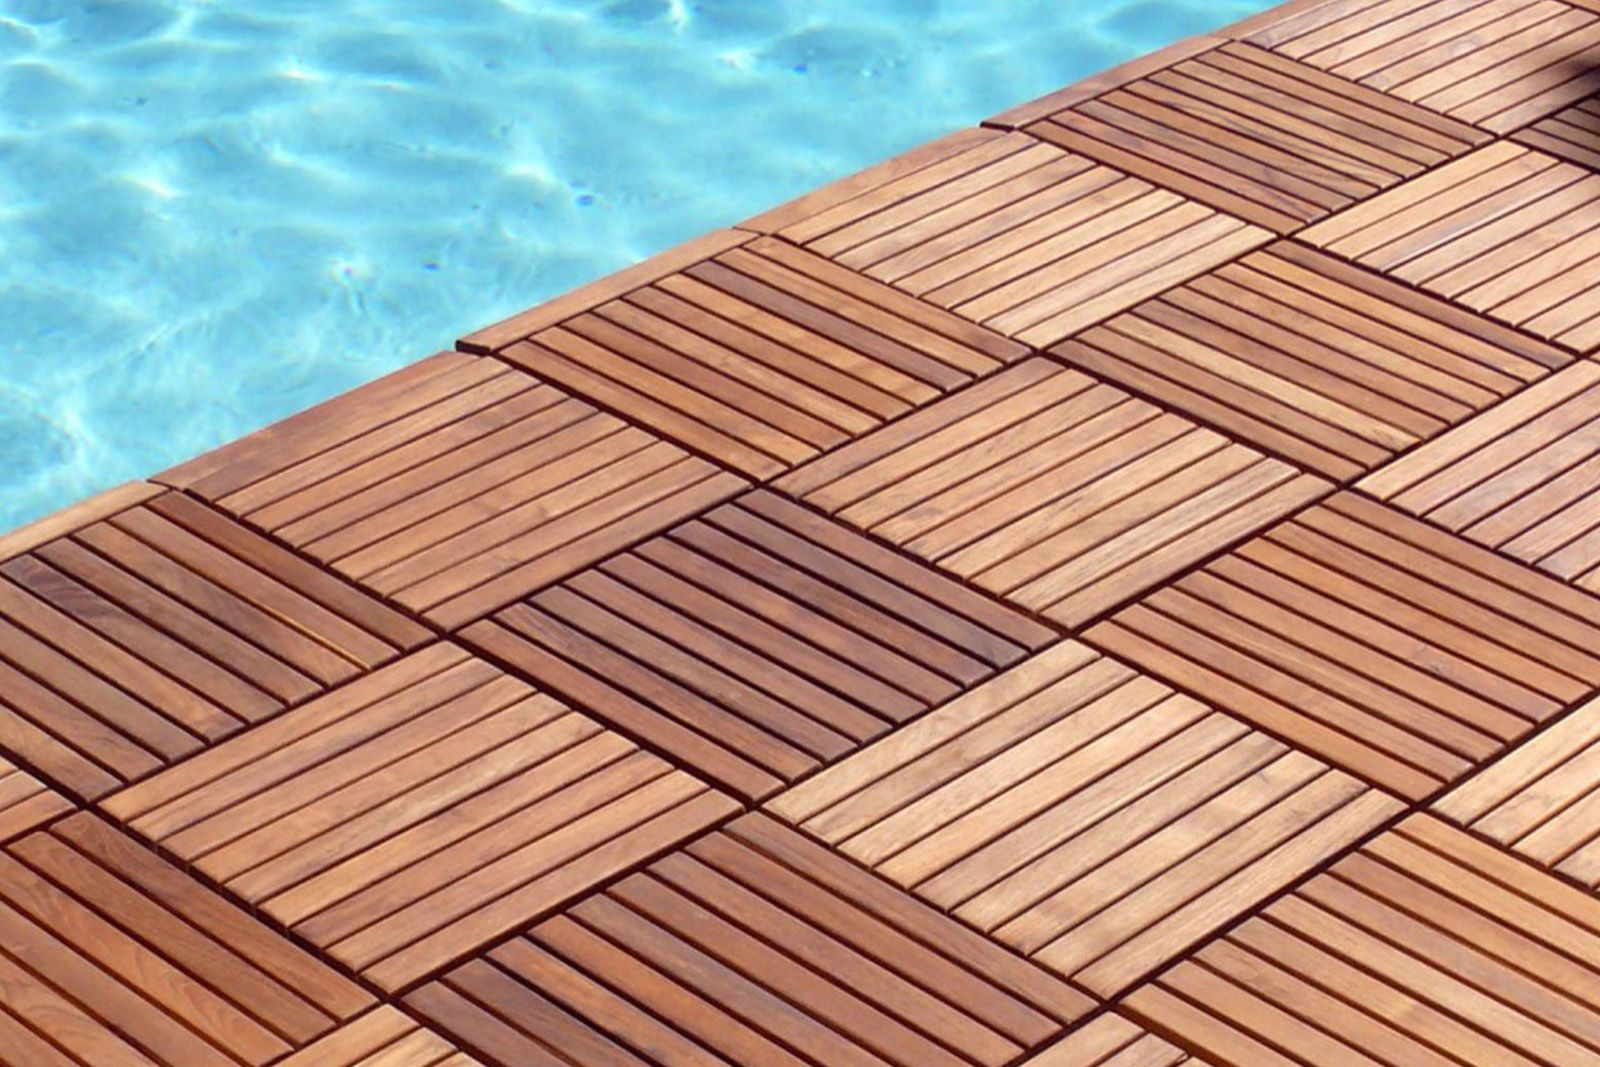 Deck Flooring is made from various wood species out of these